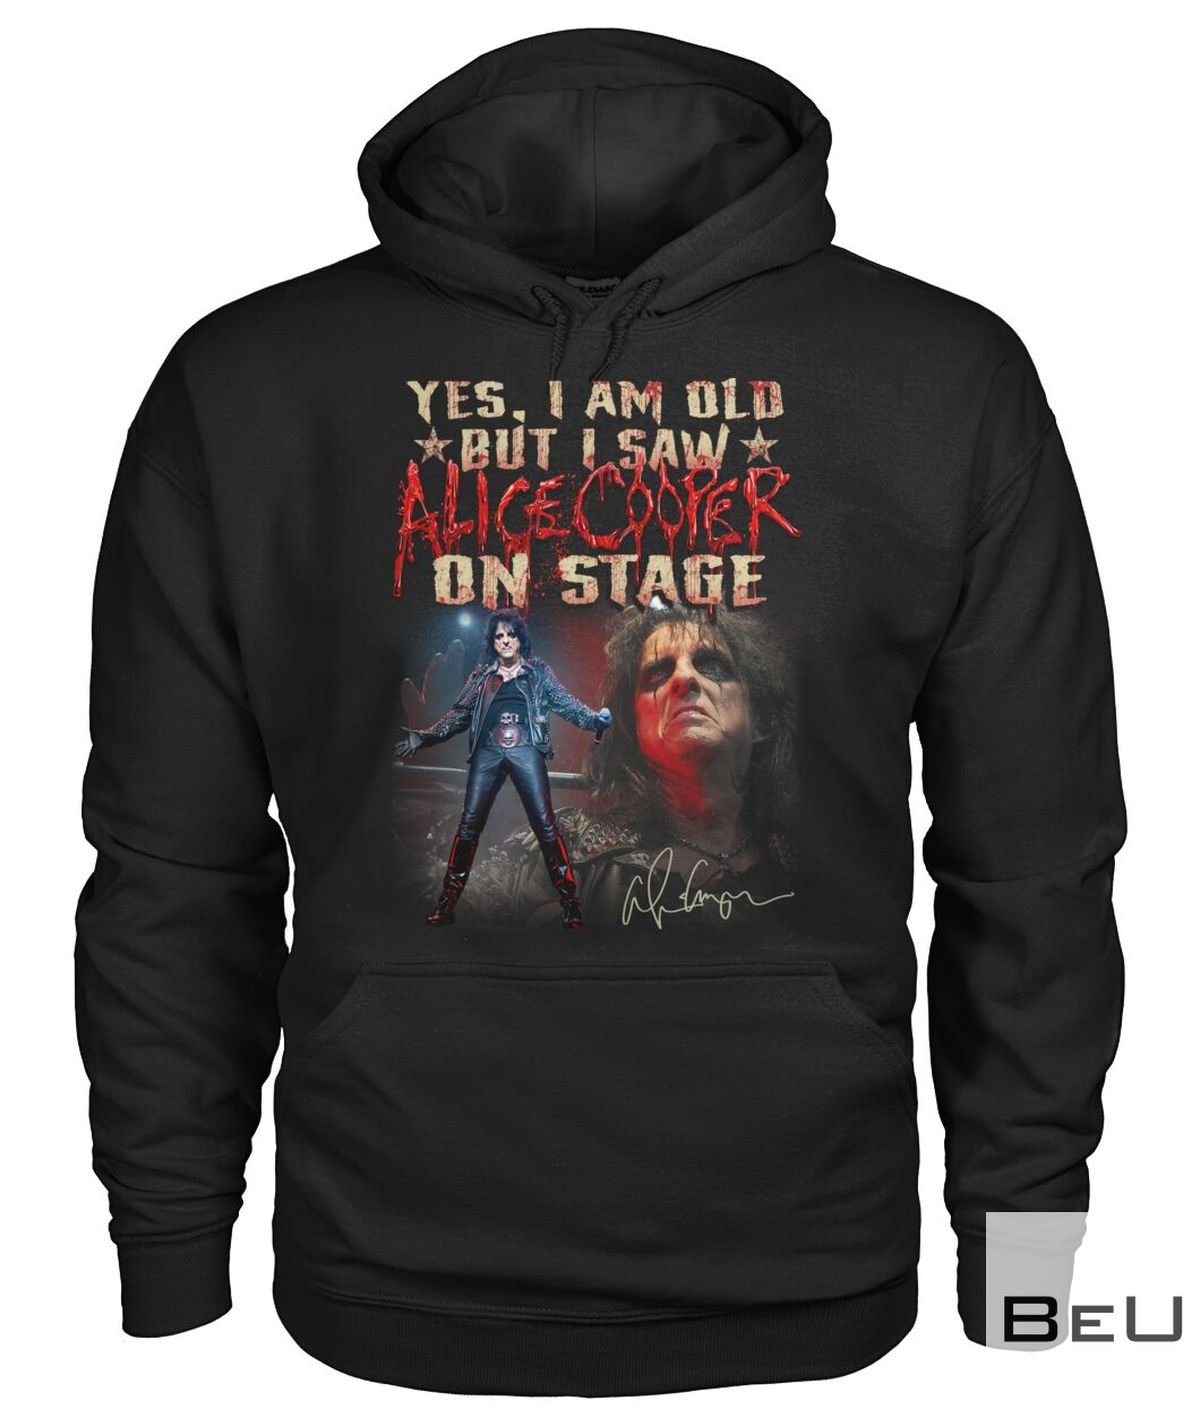 Yes I Am Old But I Saw Alice Cooper On Stage Shirtz